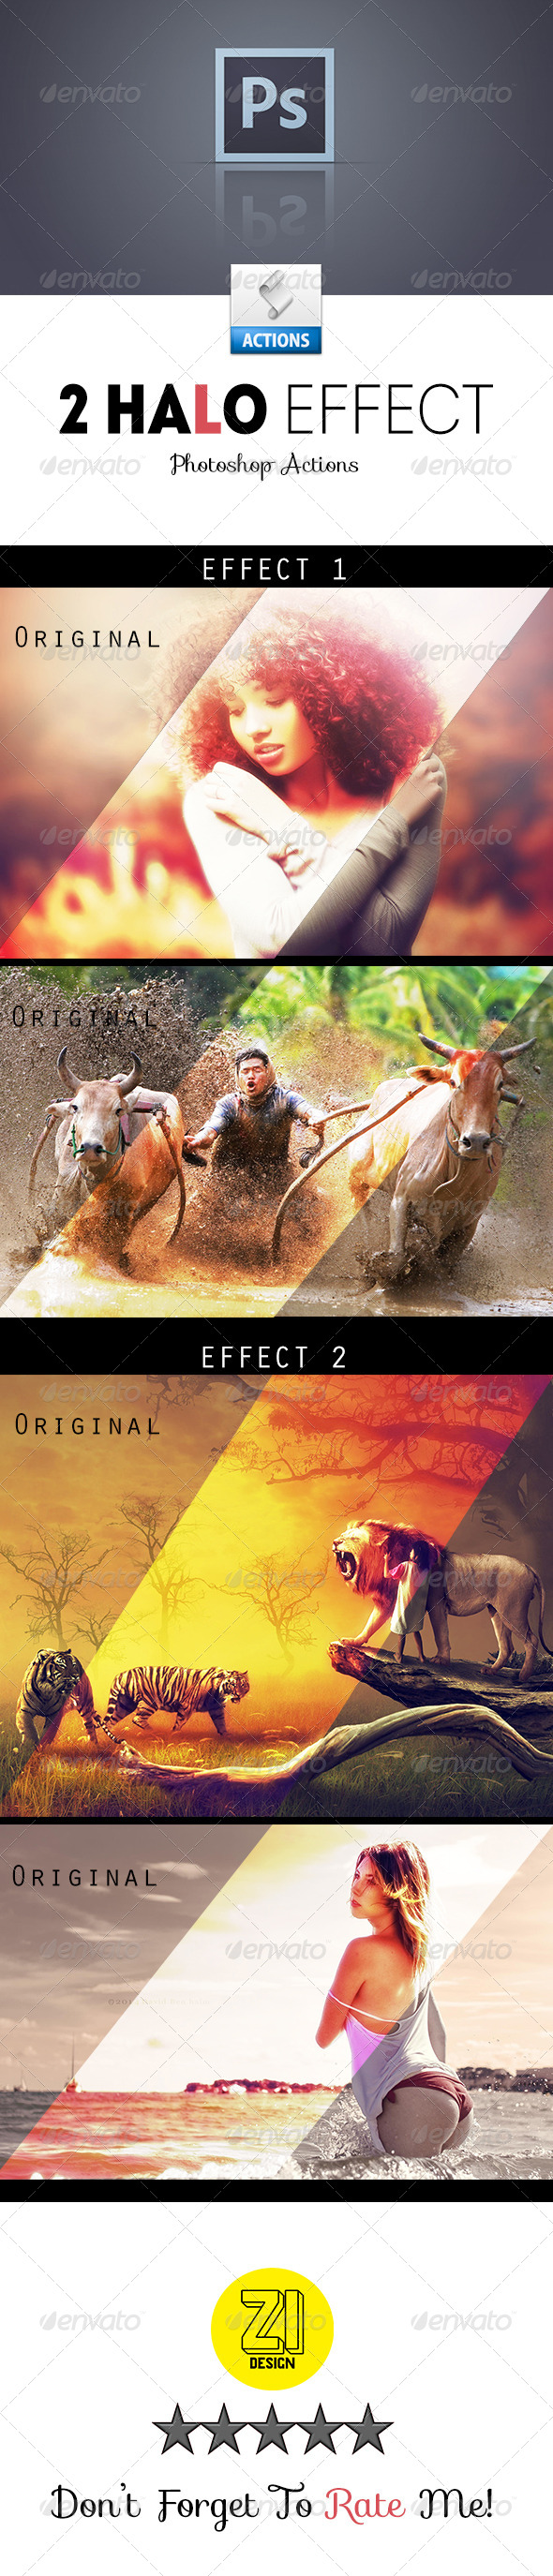 GraphicRiver 2 Halo Effect Photoshop Actions 8758459